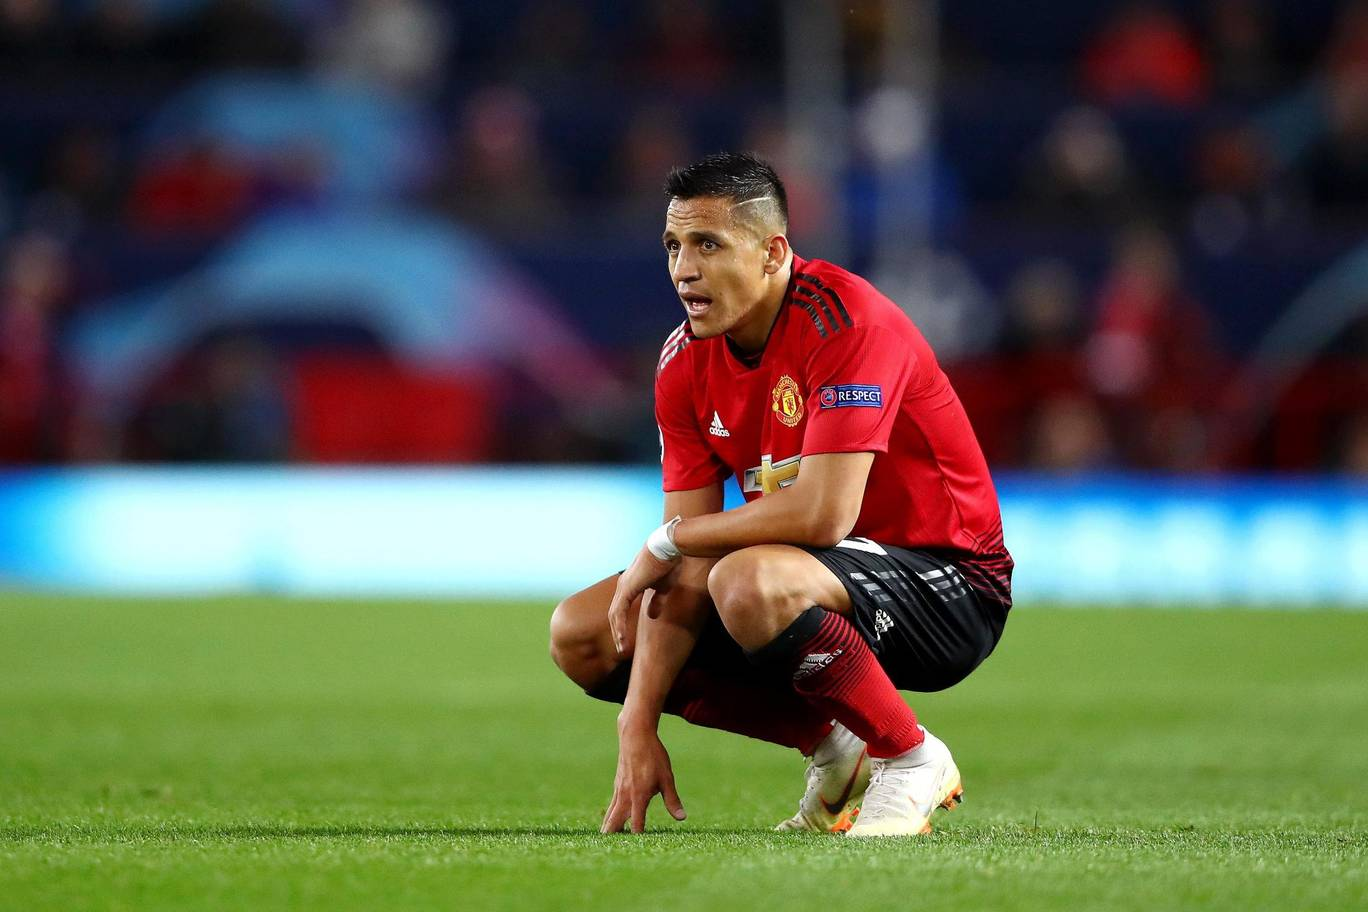 alexissanchez1311 - Manchester United to loan out Sanchez